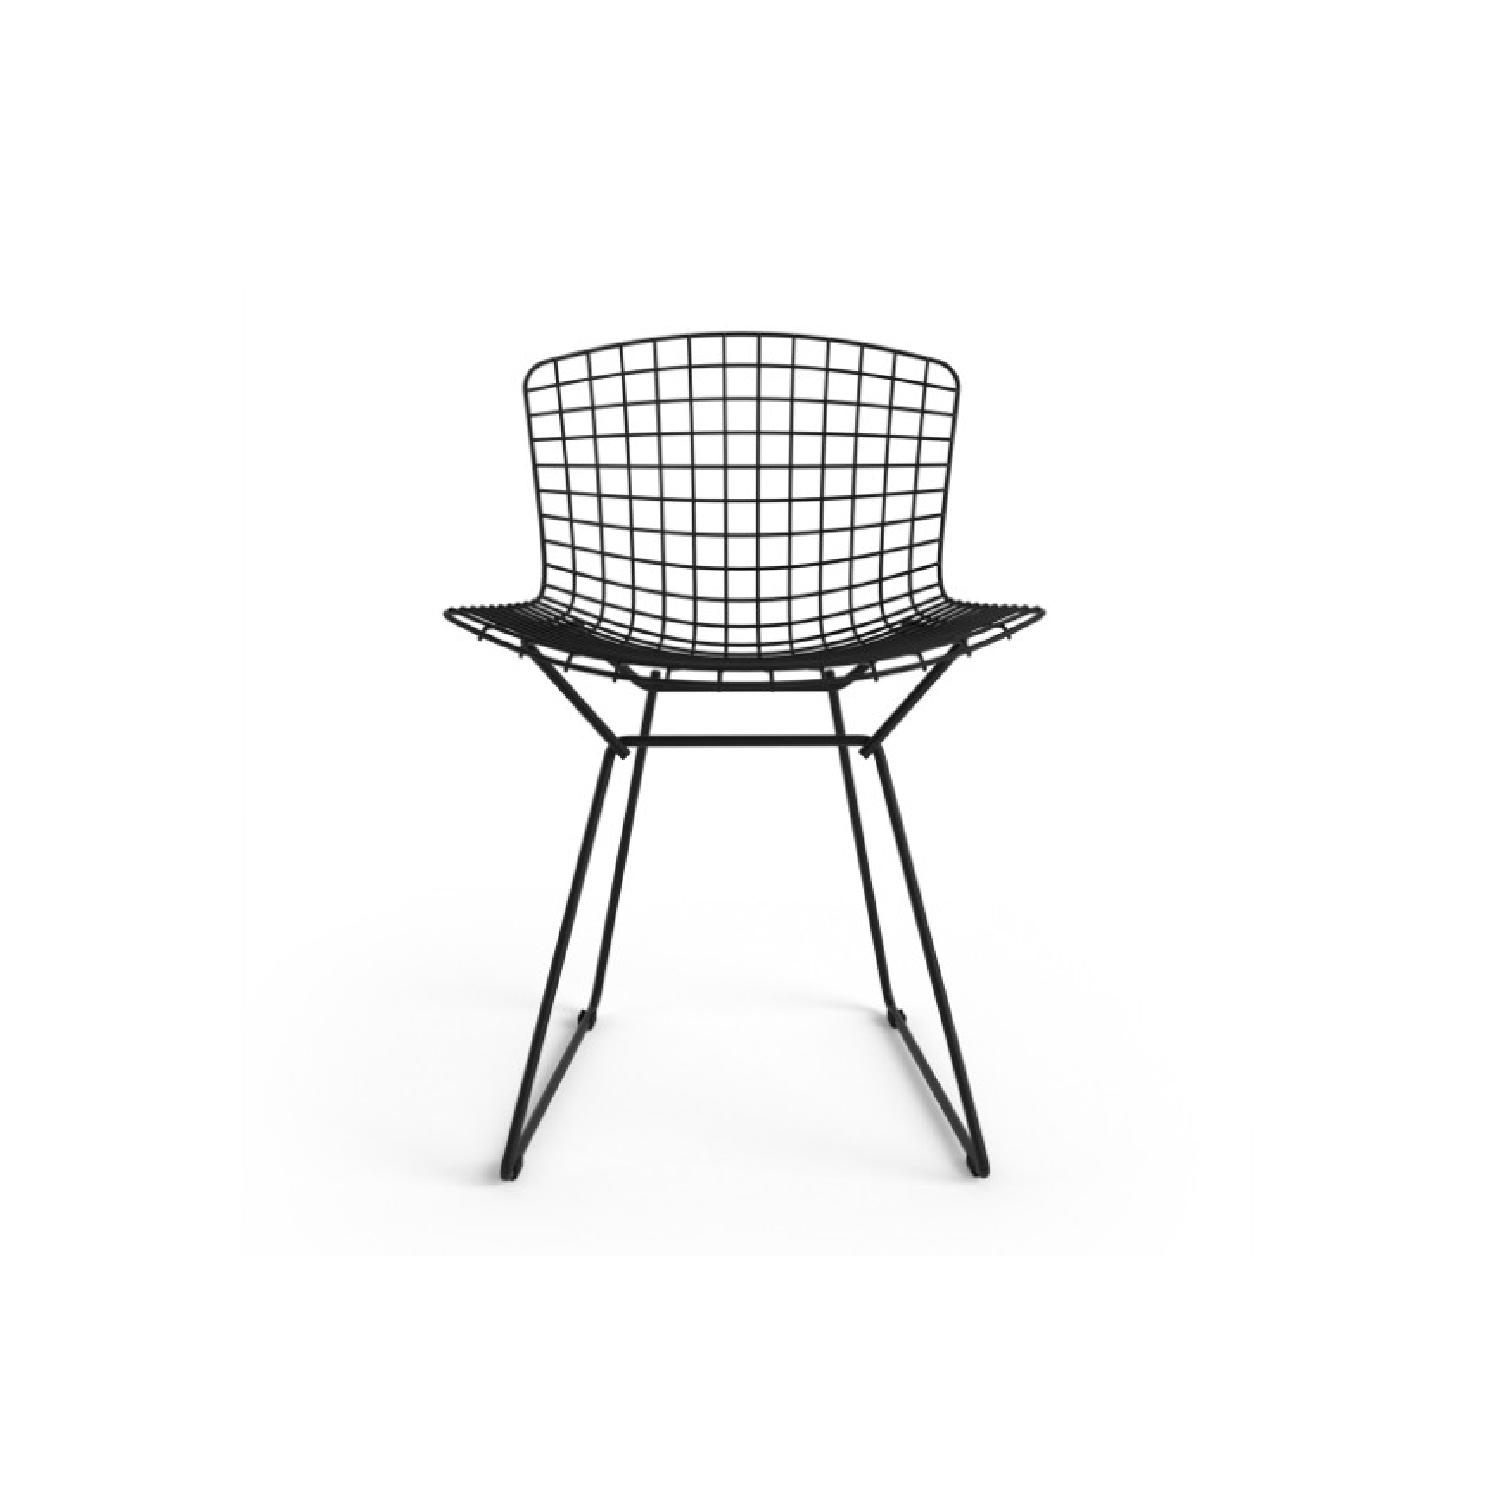 Inmod Harry Bertoia Style Side Chairs - image-4